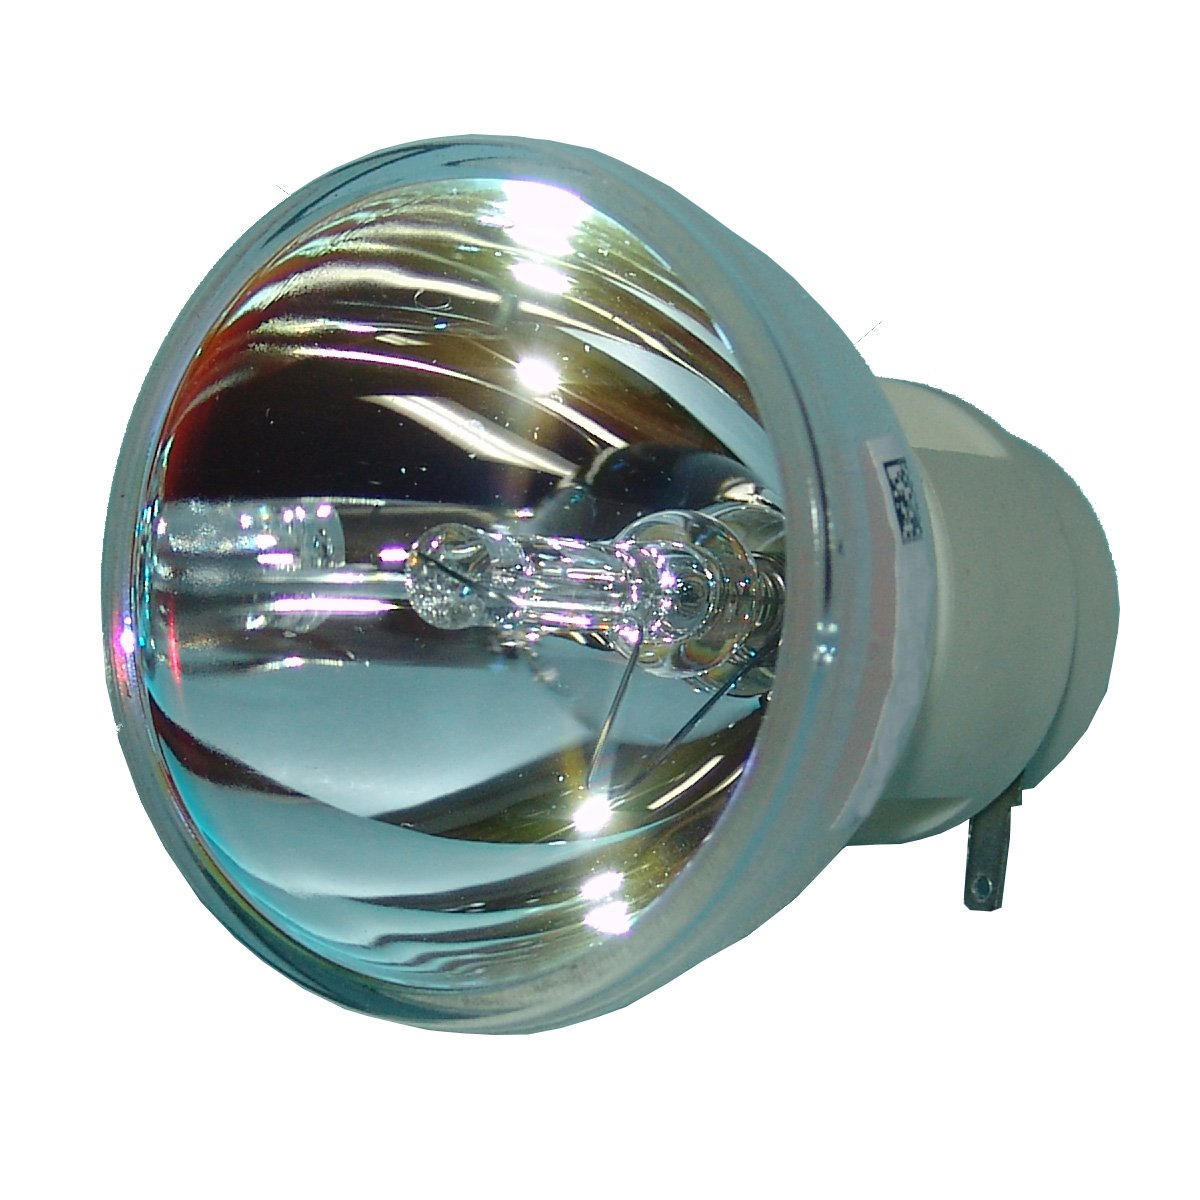 オリジナル Osram プロジェクター交換用ランプ BenQ 5J.JED05.001用 Platinum (Brighter/Durable) B07KTLDLHV Lamp Only Platinum (Brighter/Durable)